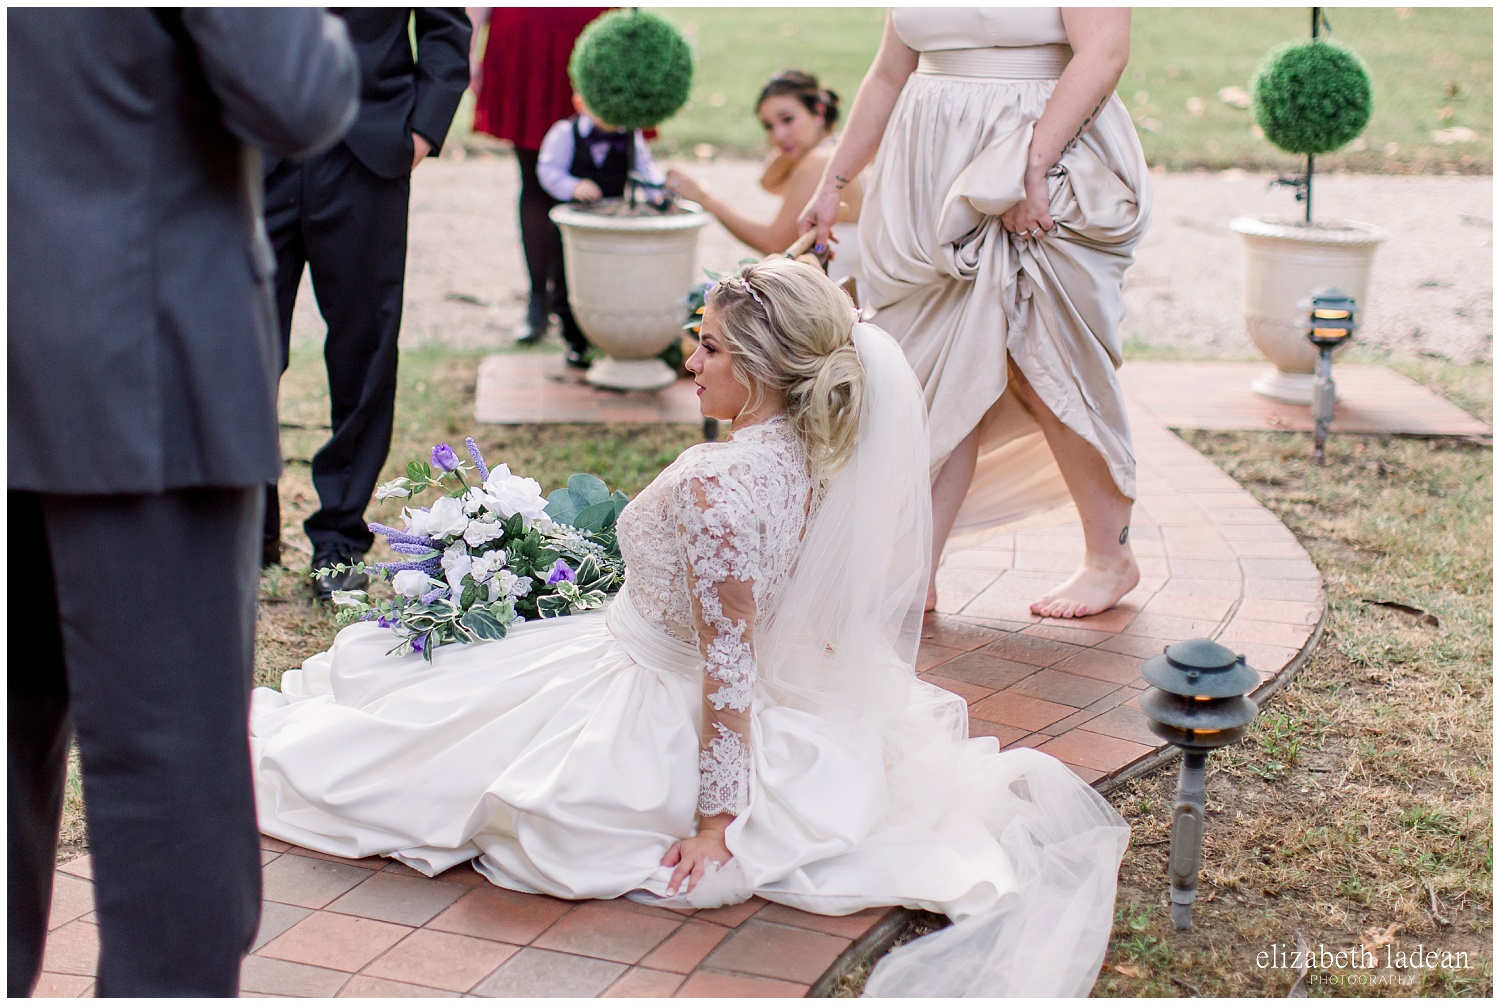 -behind-the-scenes-of-a-wedding-photographer-2018-elizabeth-ladean-photography-photo_3566.jpg